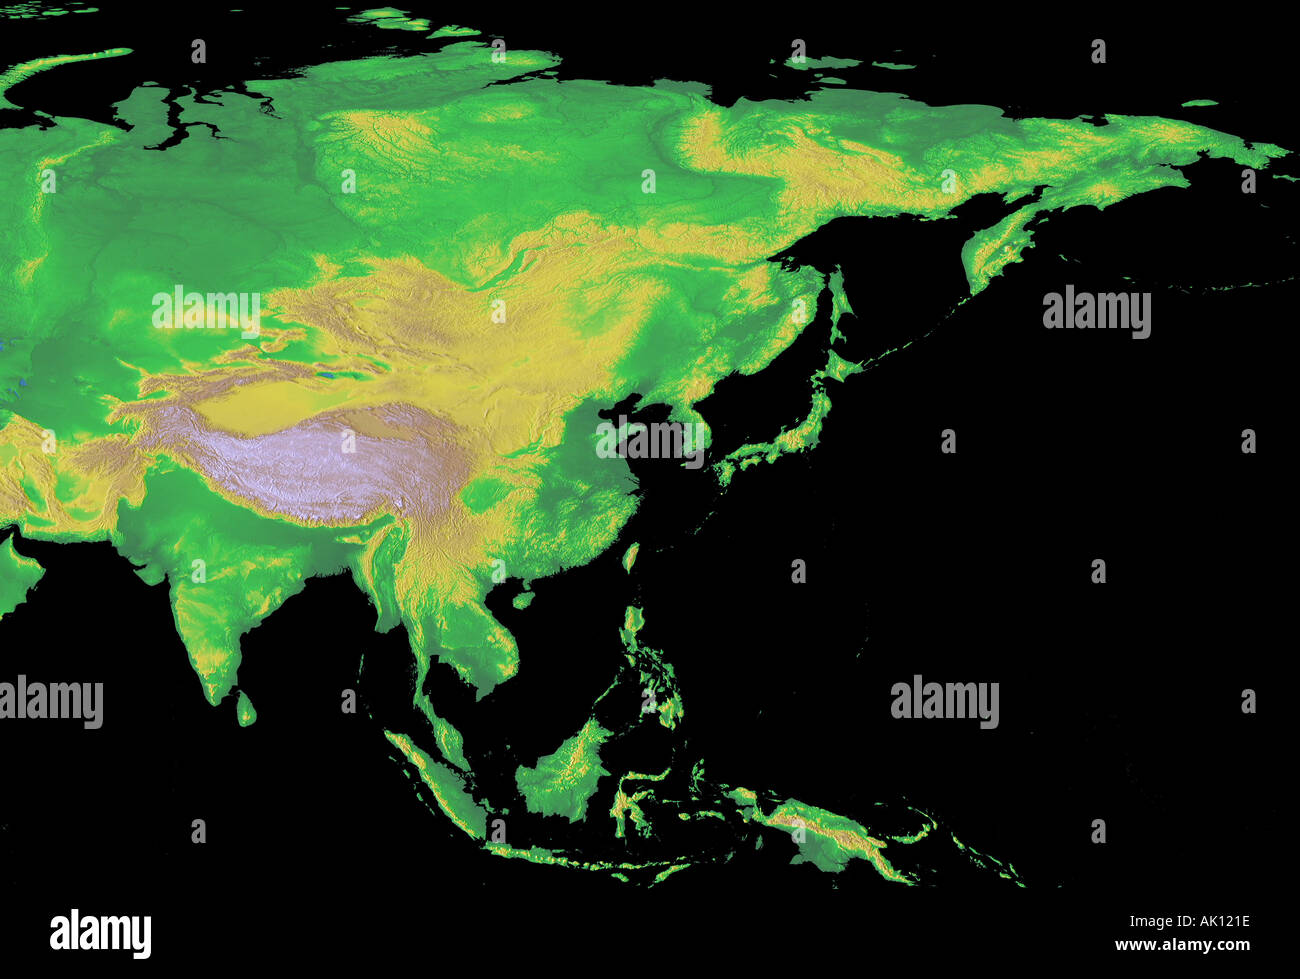 Digital Elevation Map Of Asia Earth From Space Stock Photo 1249821